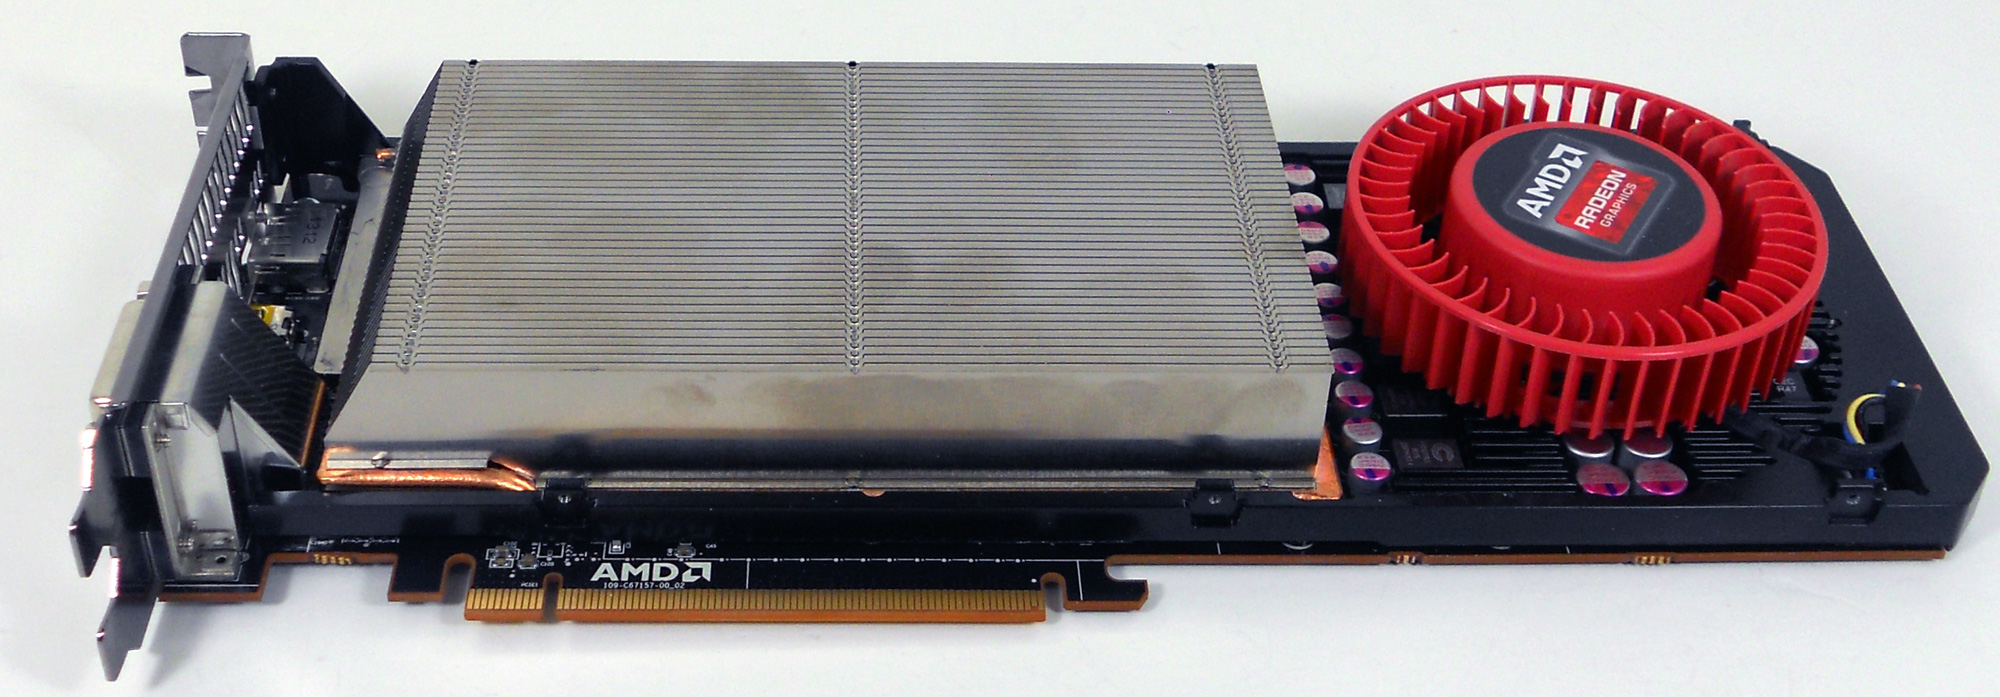 AMD's Last Minute 290 Revision & Meet The Radeon R9 290 - The AMD